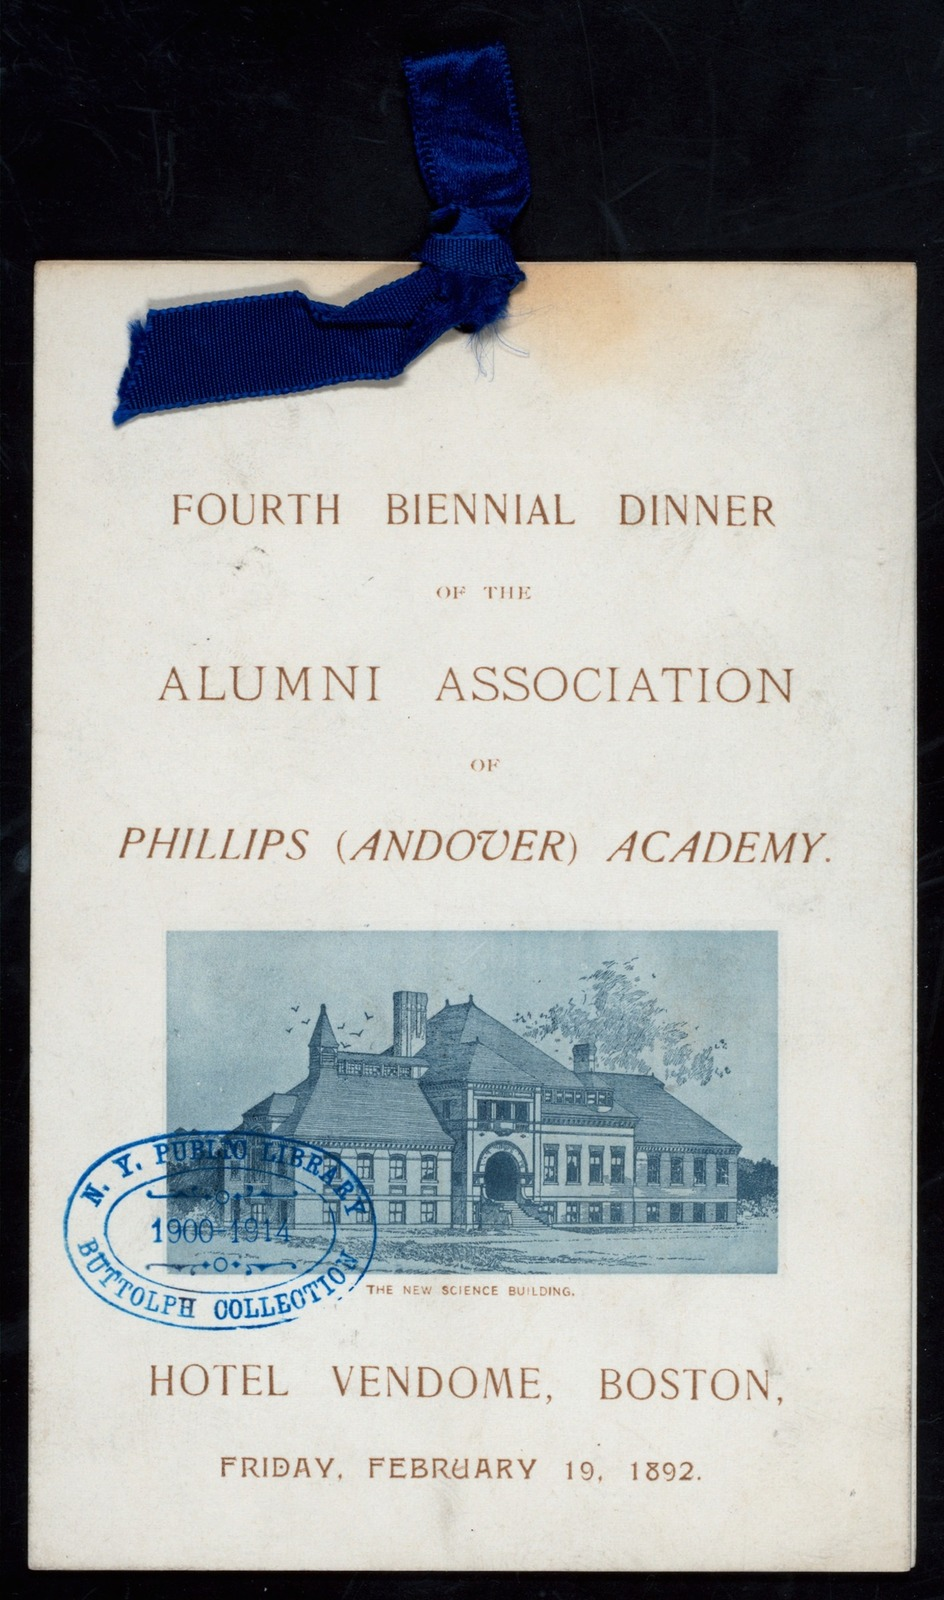 "4TH BIENNIAL DINNER [held by] ALUMNI ASSOCIATION OF PHILLIPS ANDOVER ACADEMY [at] ""HOTEL VENDOME, BOSTON,MASS."" (HOTEL)"